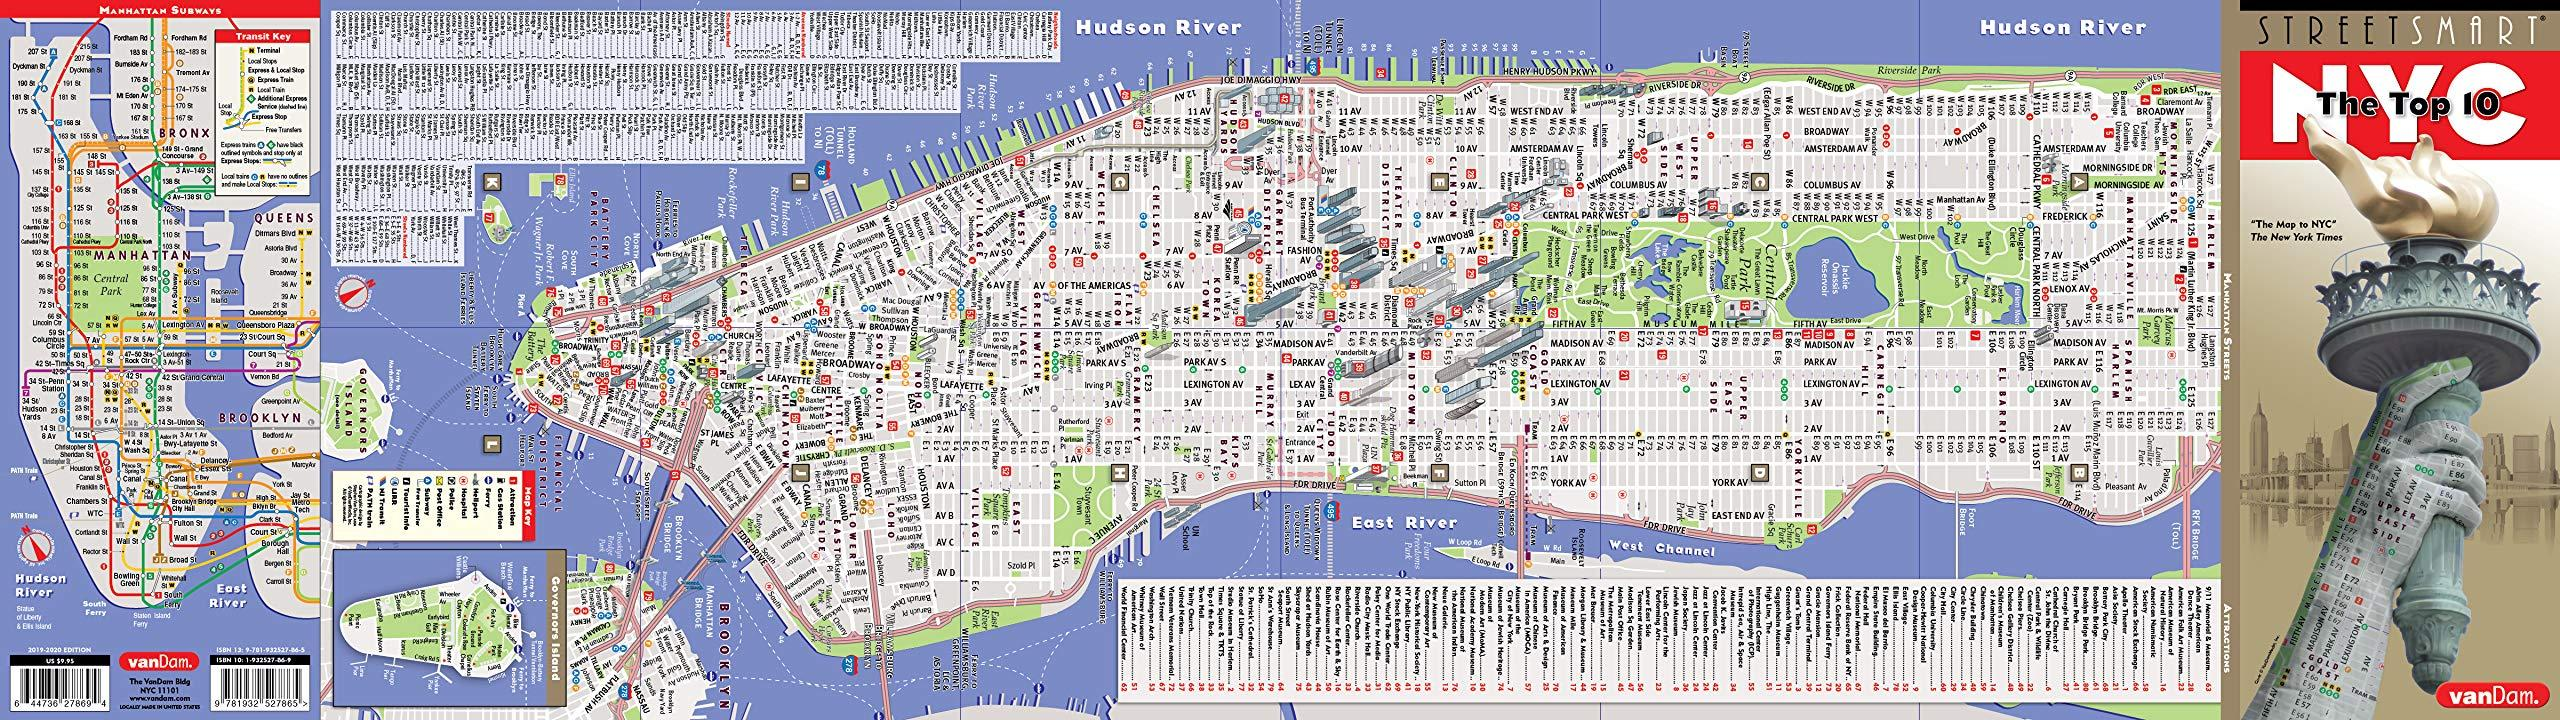 New York street map   Map of streets of New York City  New York   USA  Map of streets of New York City